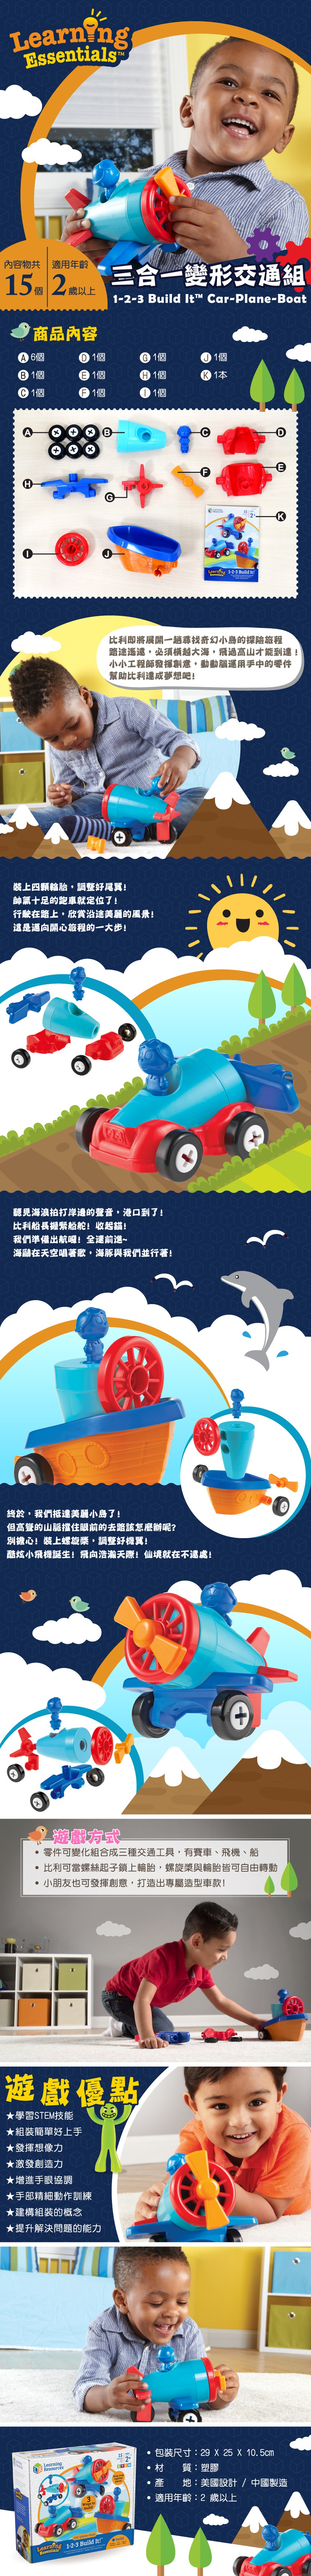 learning resources 玩具 手眼協調 玩具 想像力 玩具